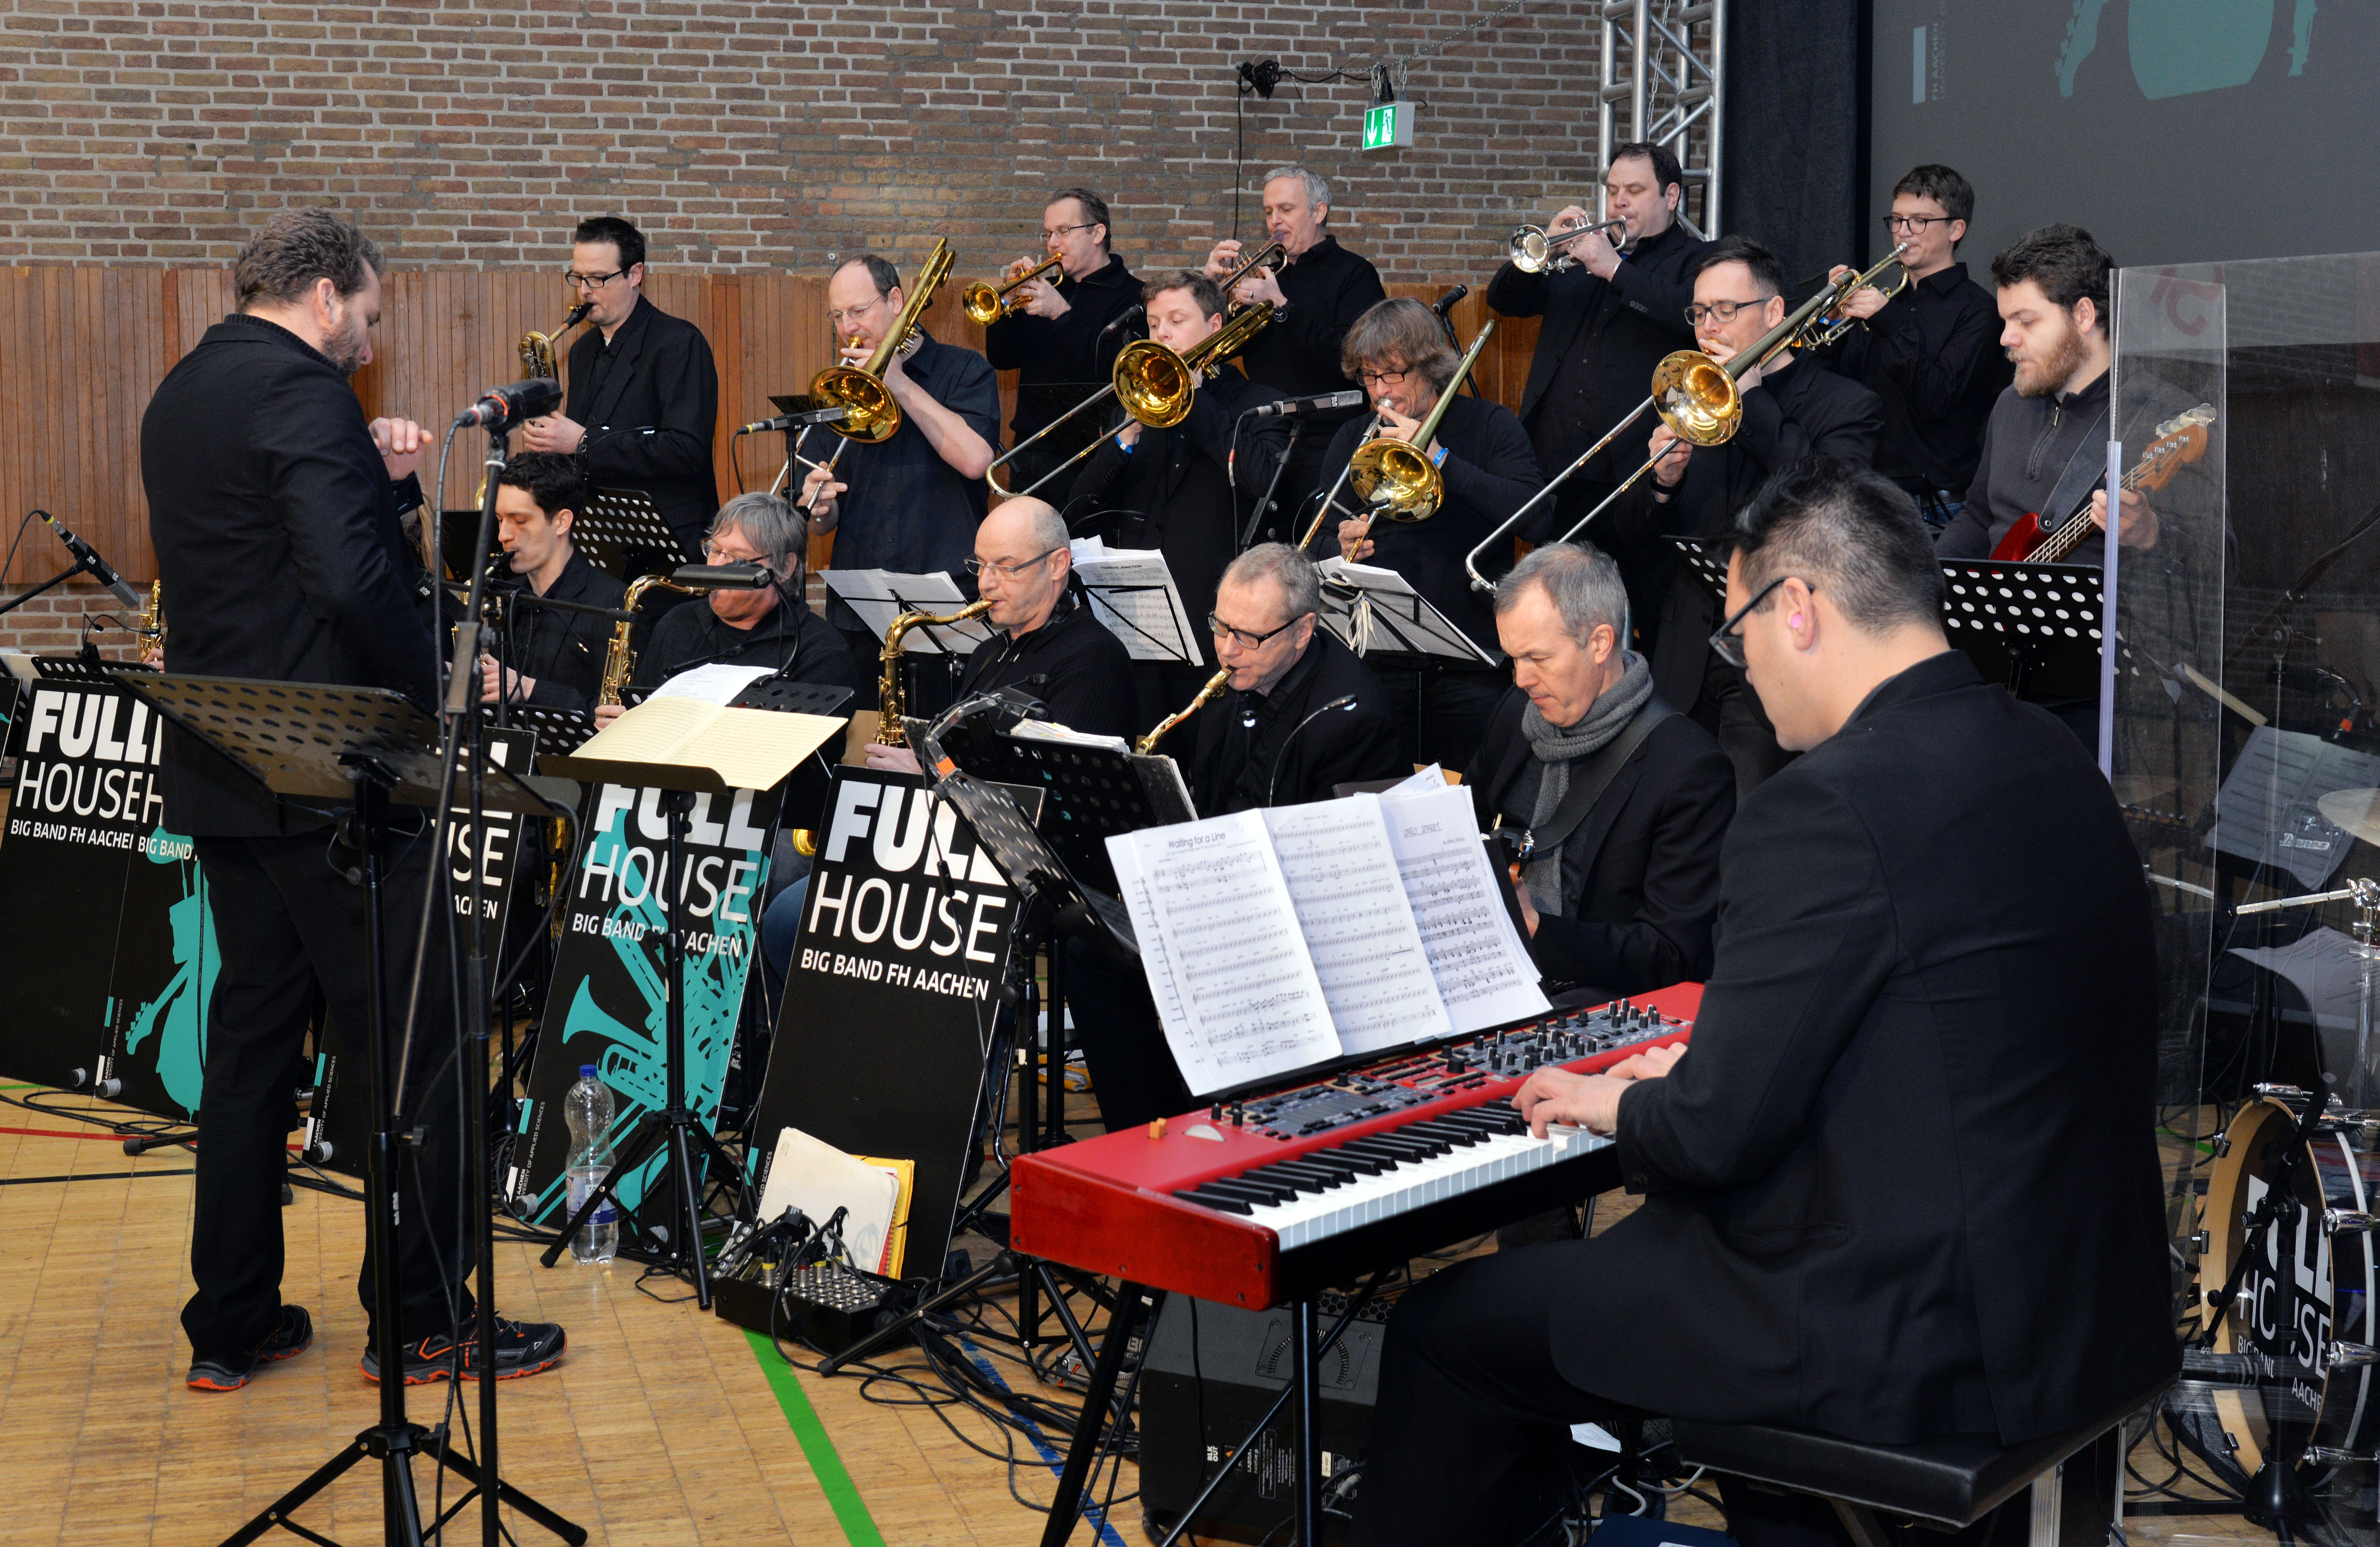 Big Band der FH Full House